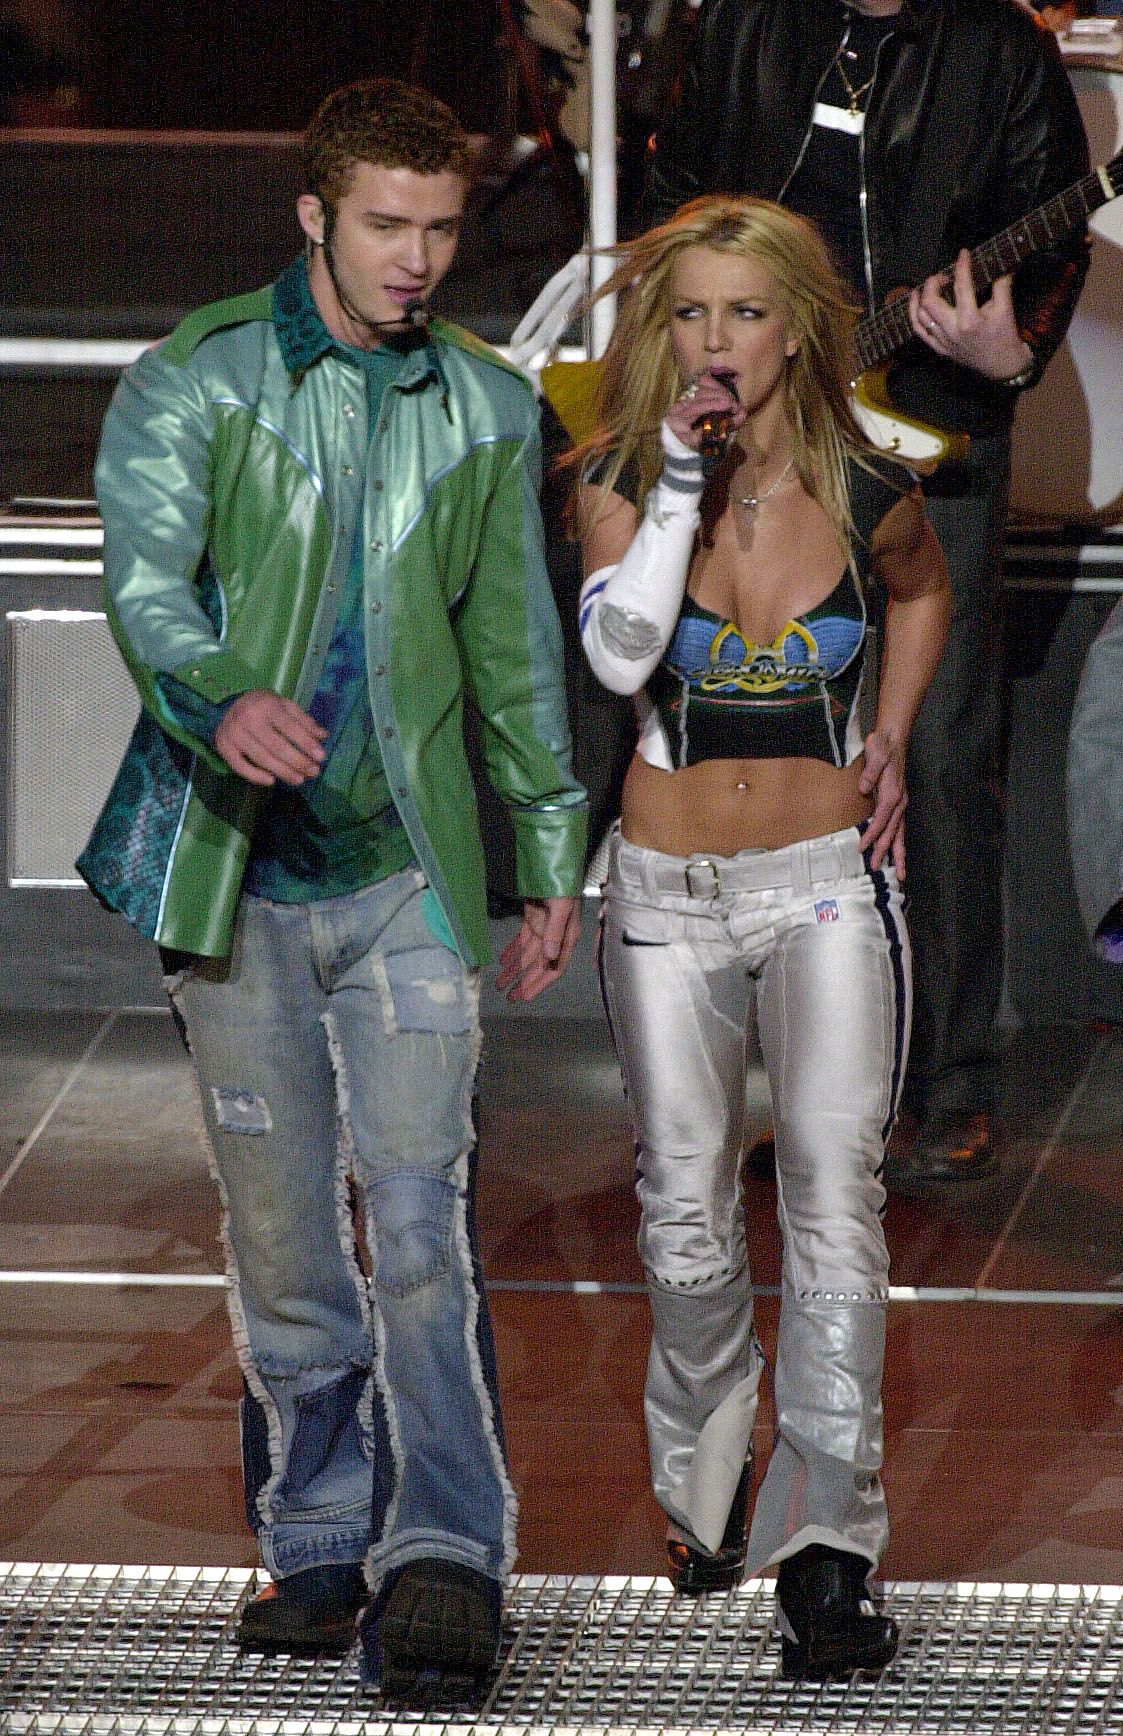 Throwback To That Time Britney Spears And Justin Timberlake Owned The Super Bowl Halftime Show